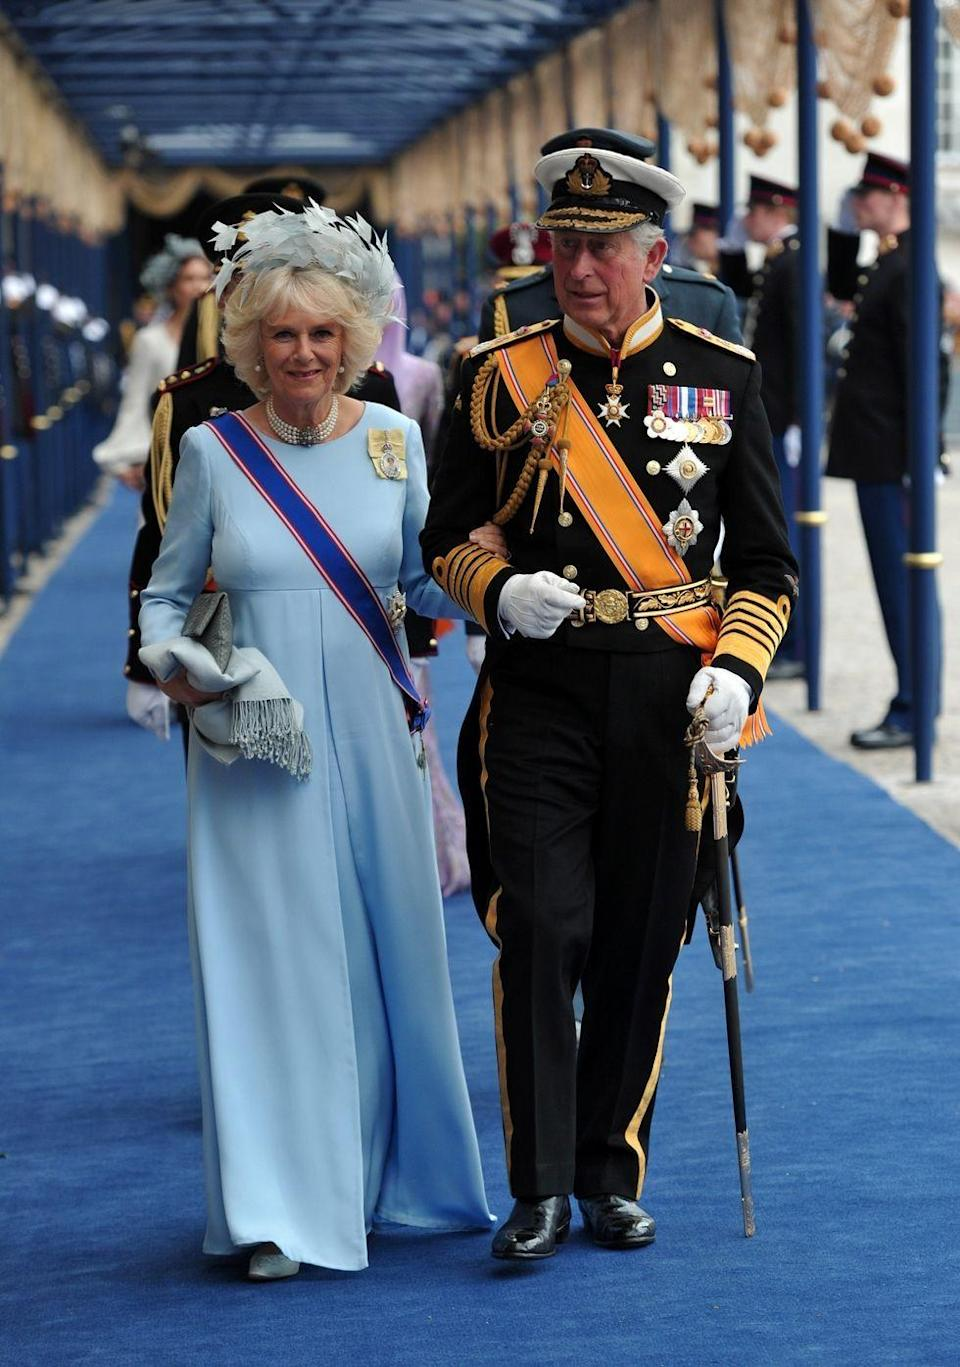 <p>The inauguration of King Willem Alexander of the Netherlands was naturally a very special occasion, with called for an appropriately regal outfit for Camilla in pale robin's egg blue with a feathered fascinator and sash.</p>